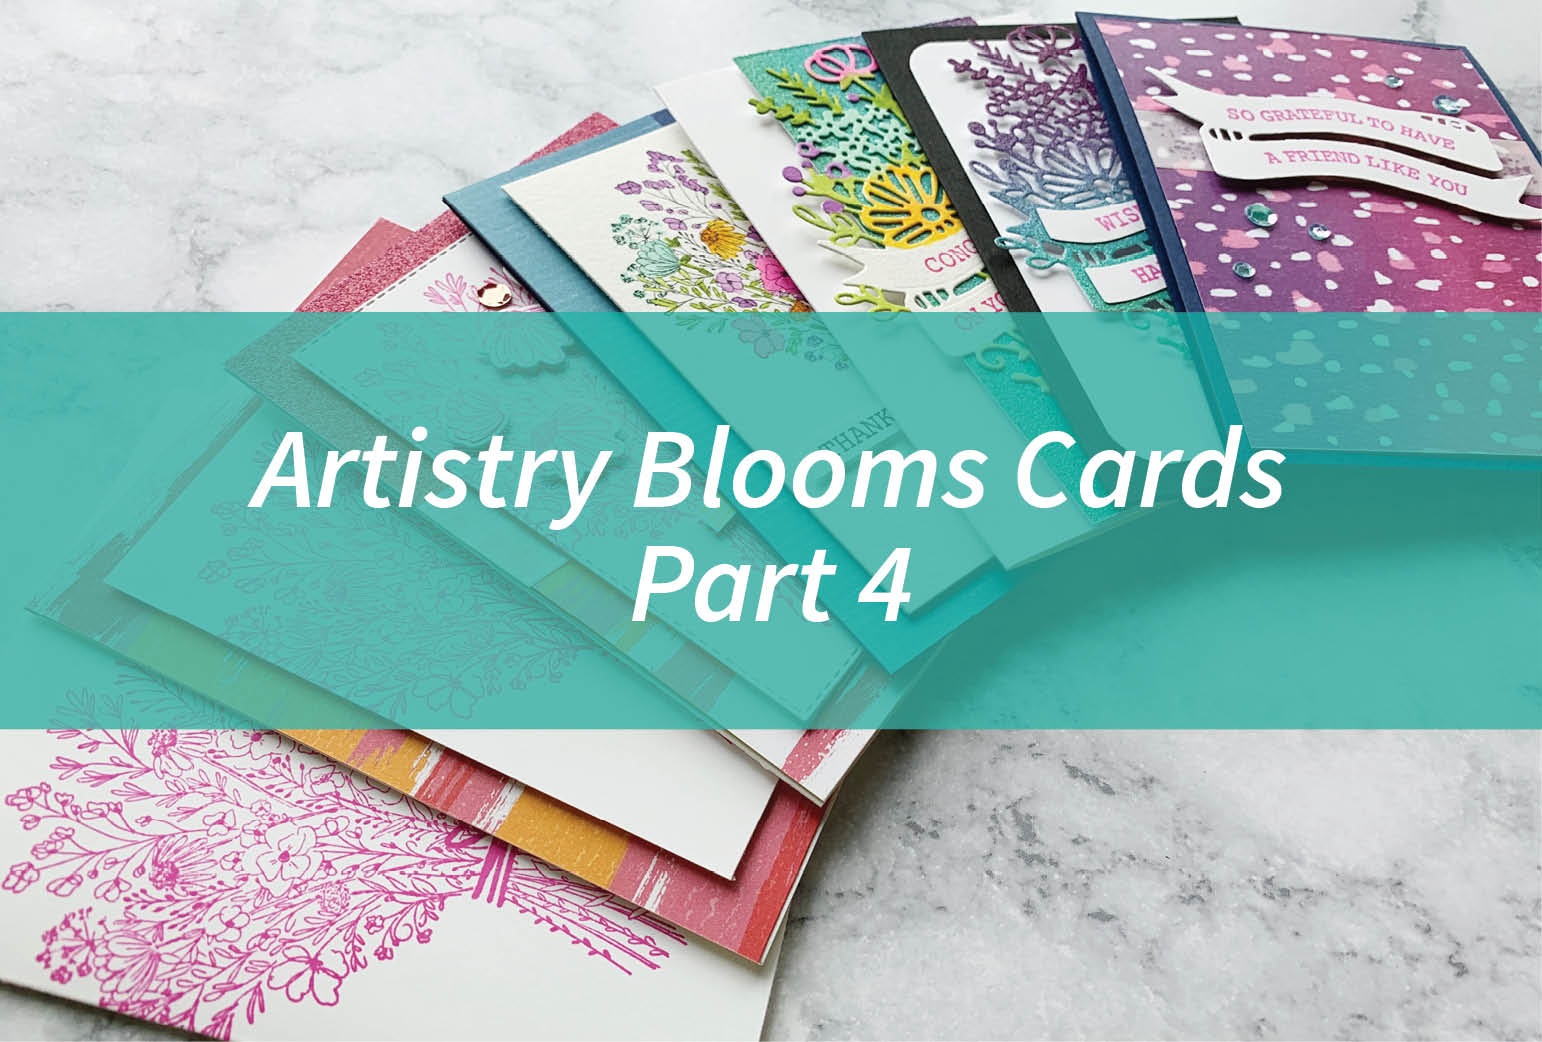 Artistry Blooms Cards Part 4